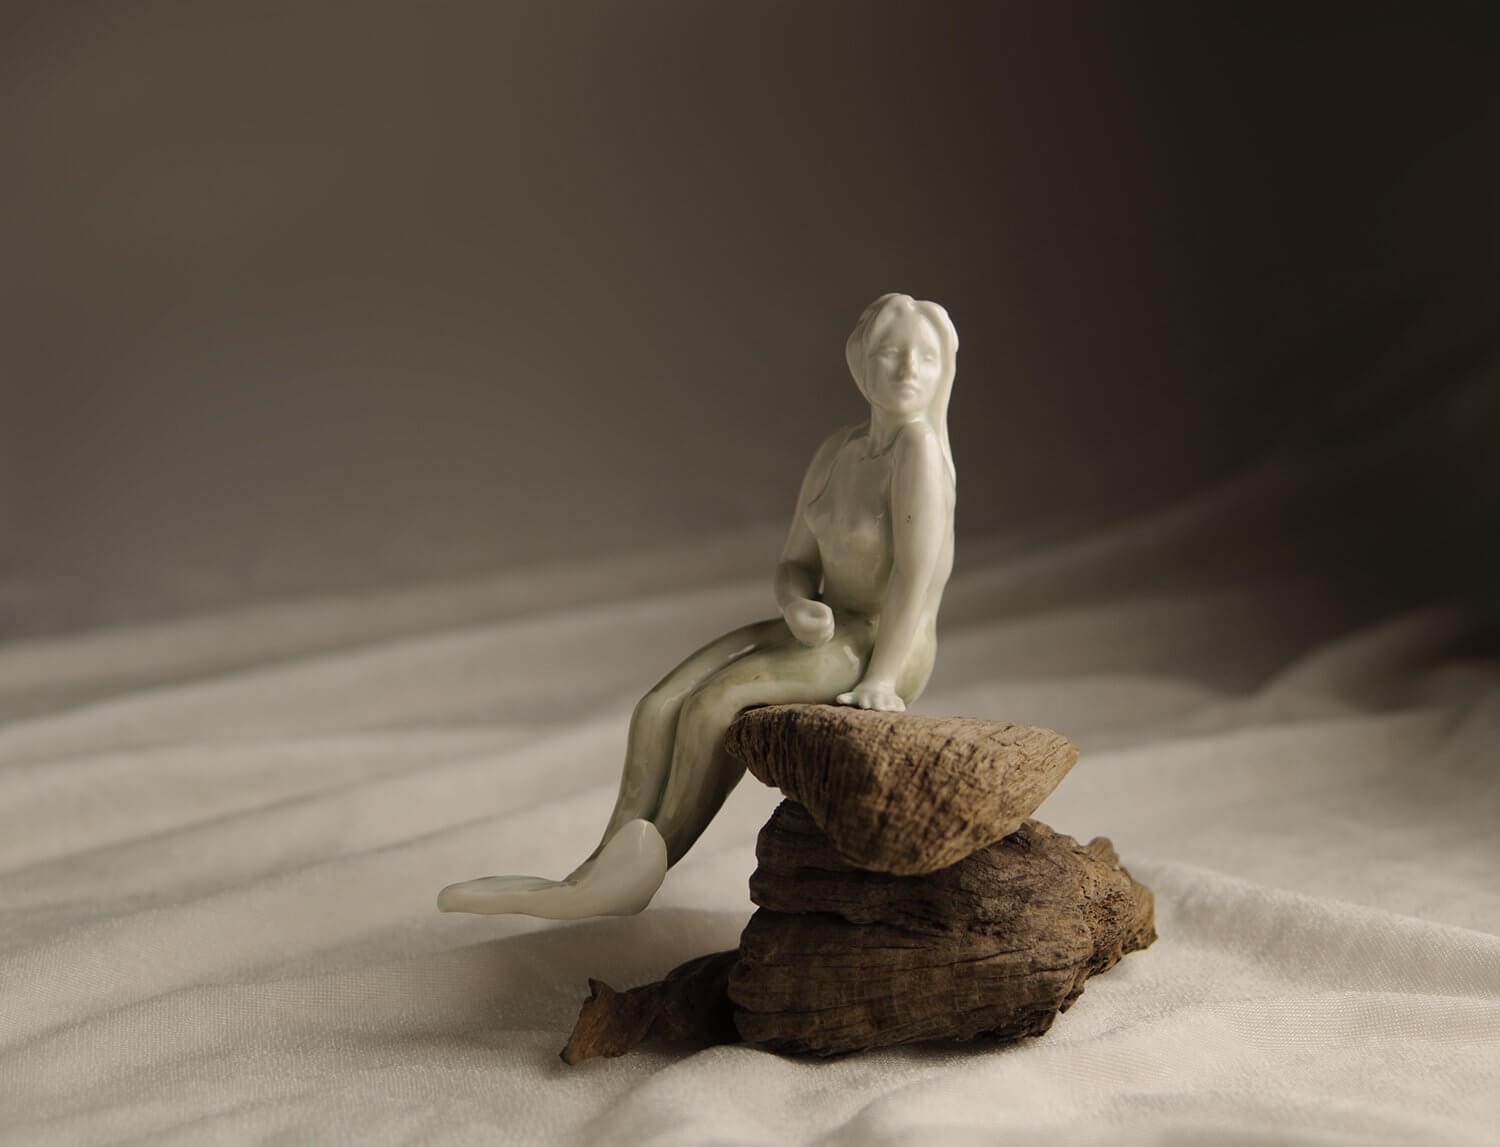 Mermaid ceramic sculpture photographed on a piece of fabric with ripples reminiscent of ocean waves